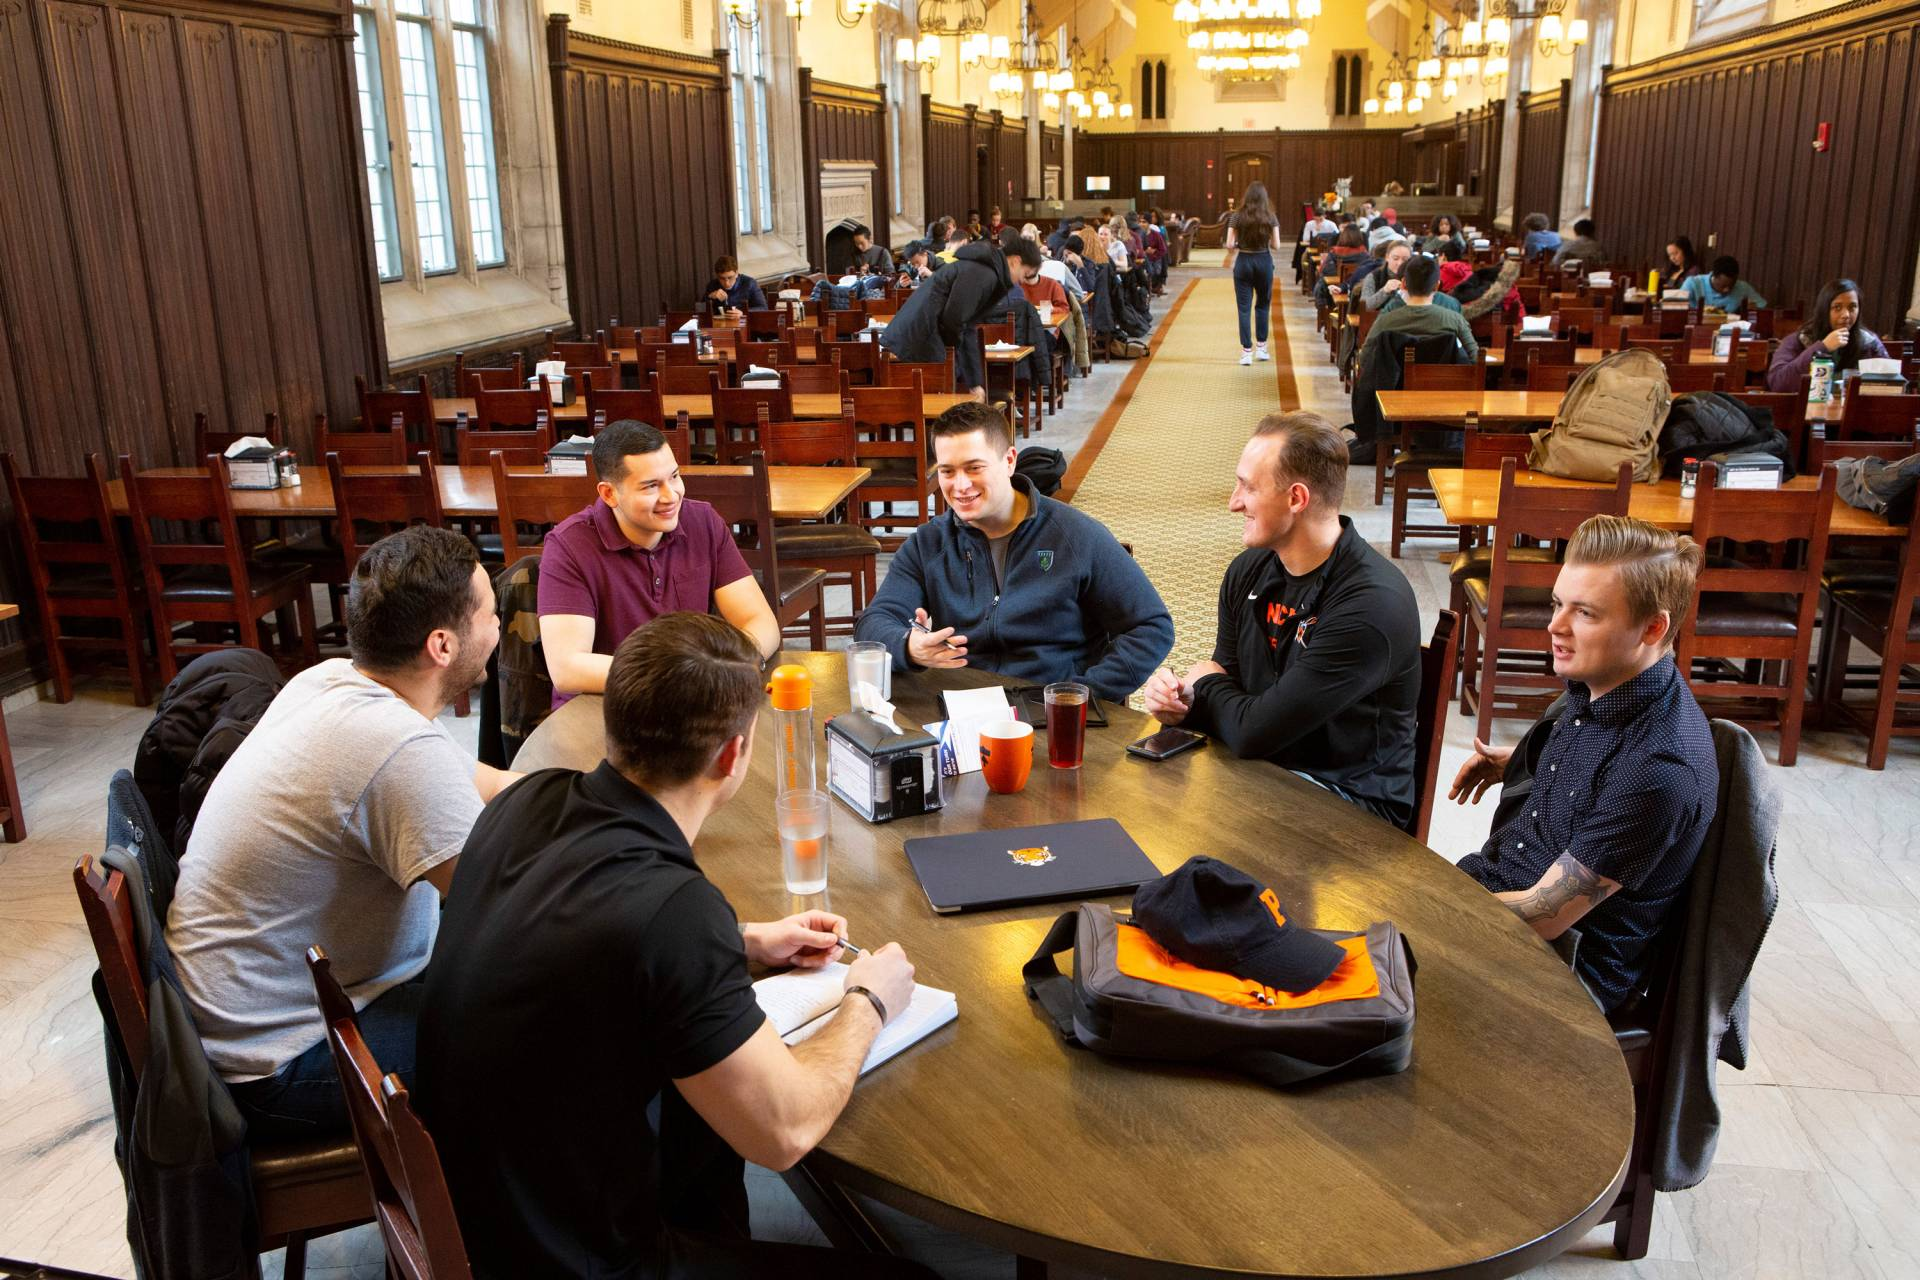 Students share a table in a dining hall